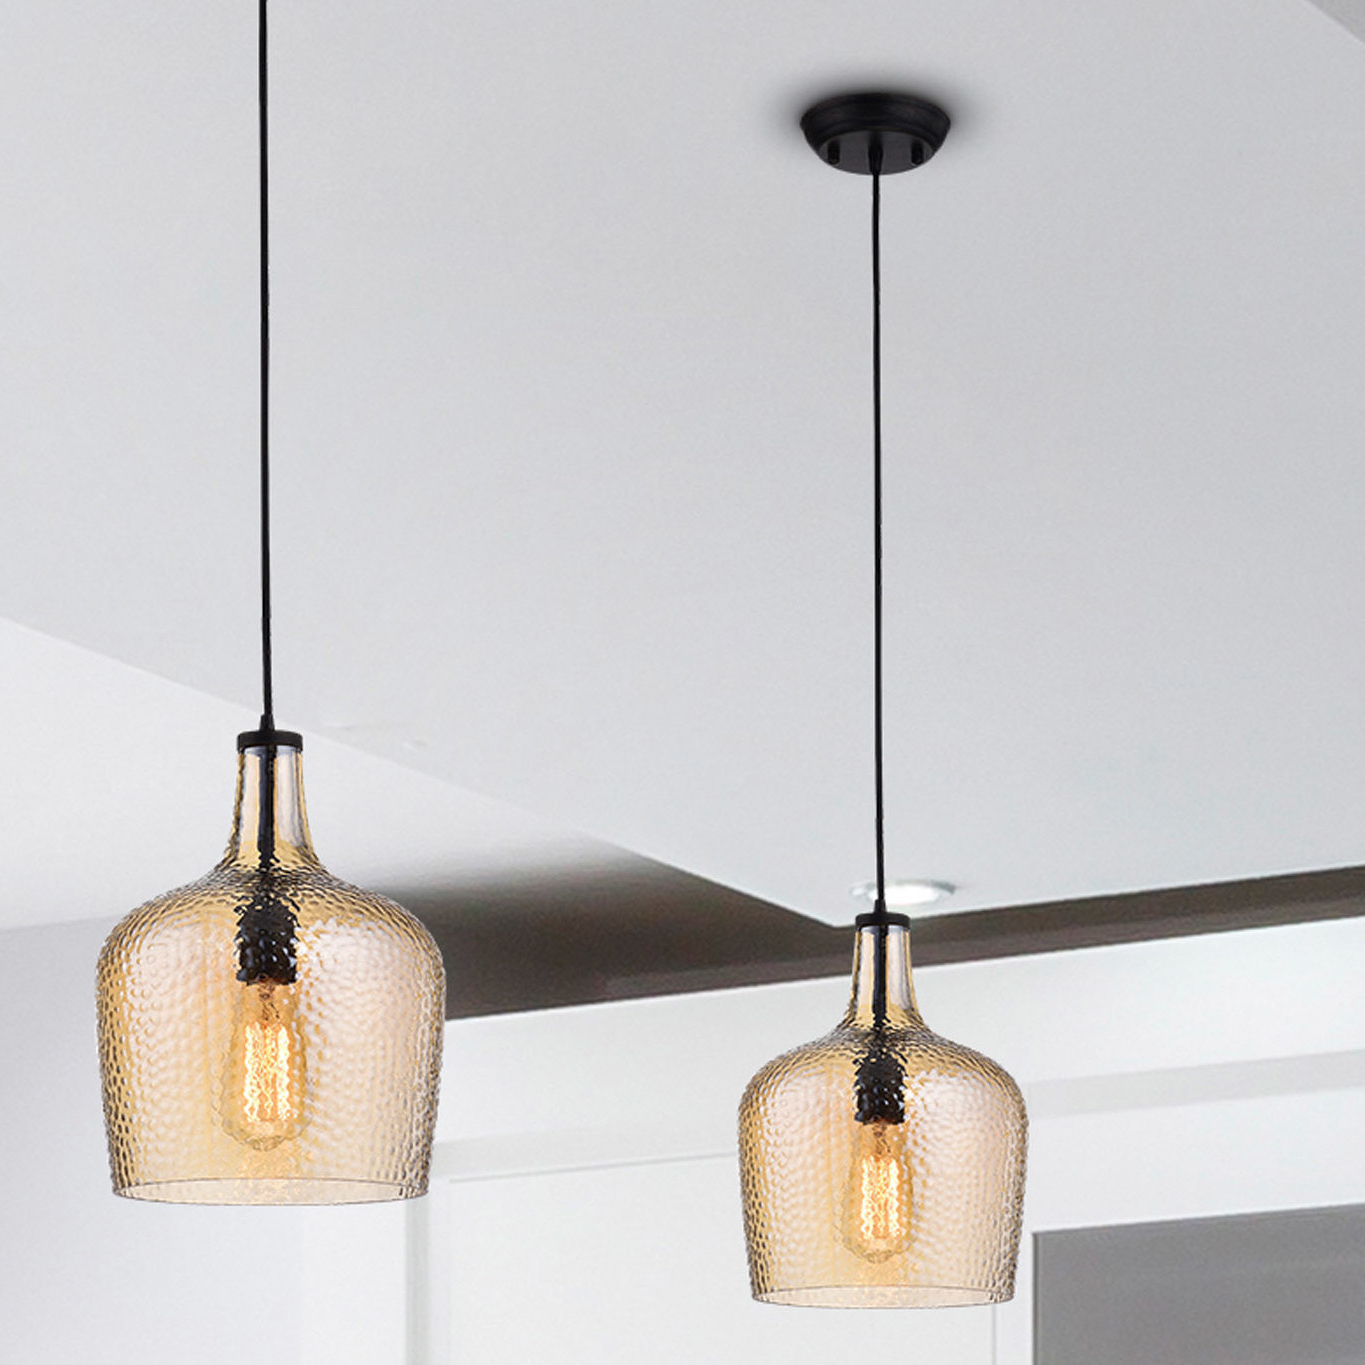 Recent Scruggs 1 Light Geometric Pendants Throughout Williston Forge Scruggs 1 Light Geometric Pendant & Reviews (View 2 of 25)